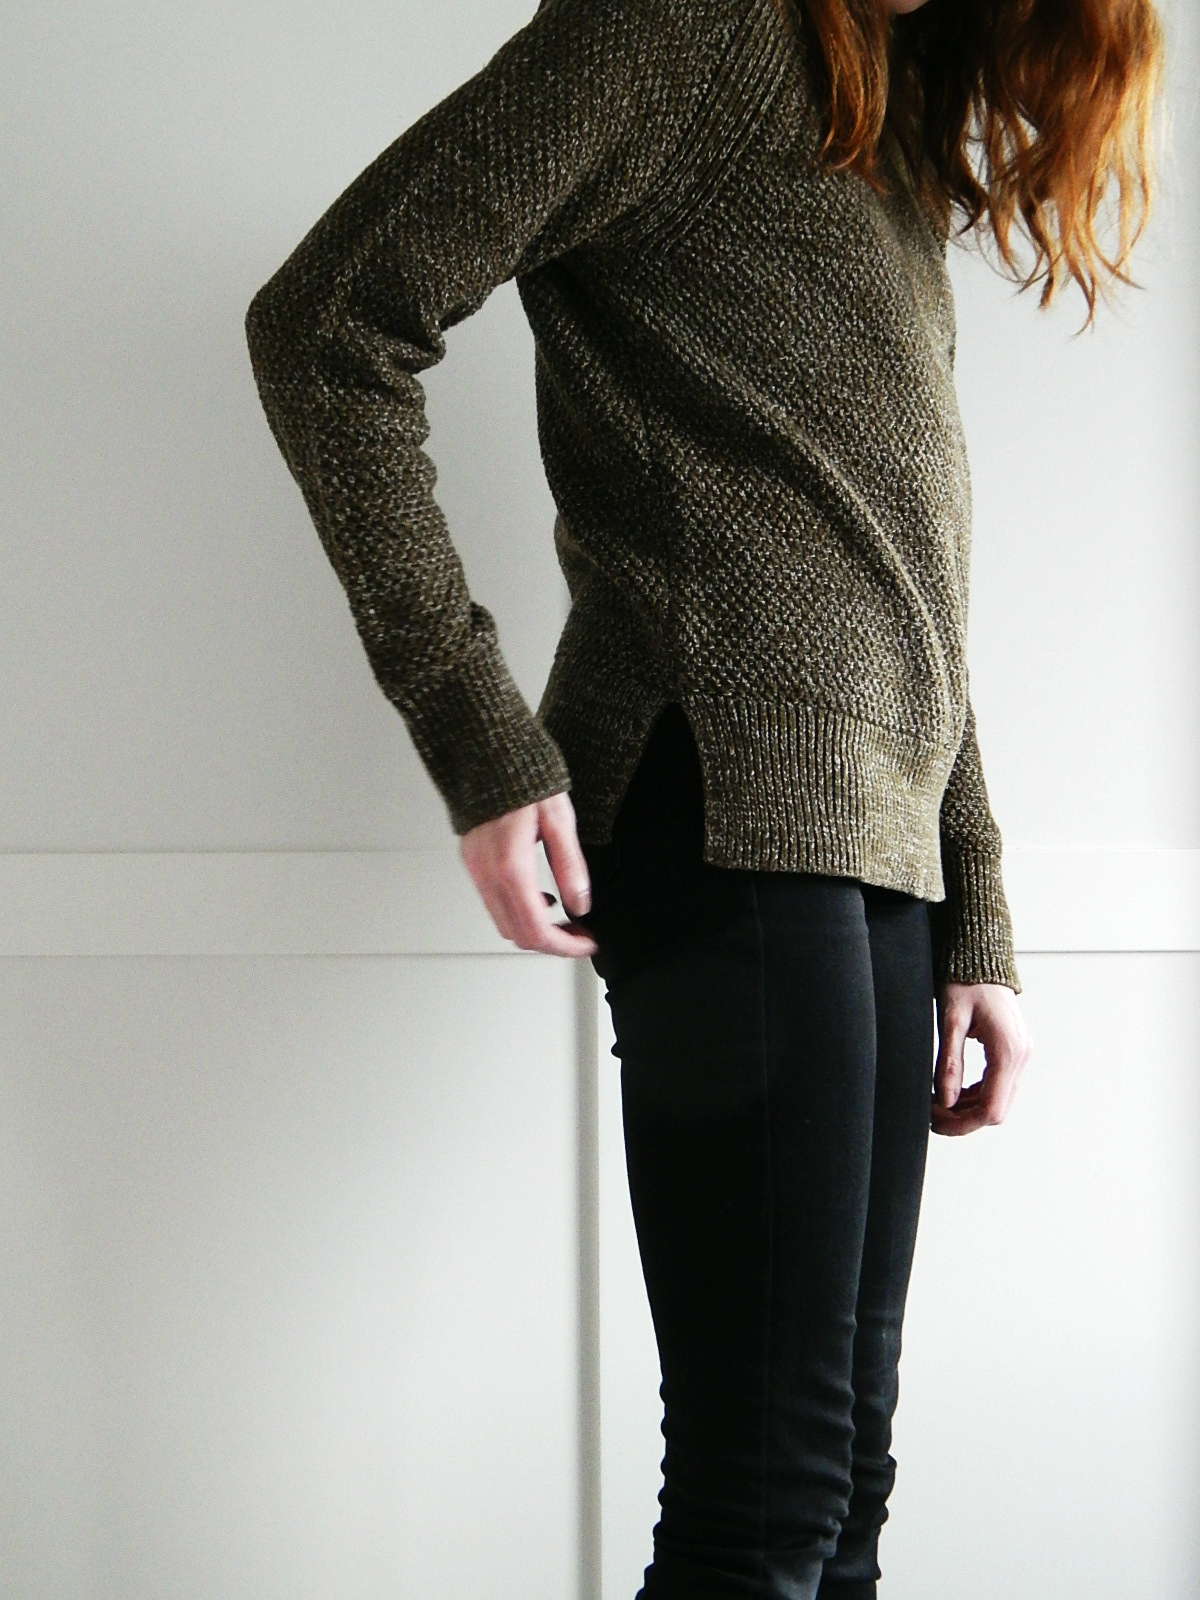 Moss-stitch raglan sweater review